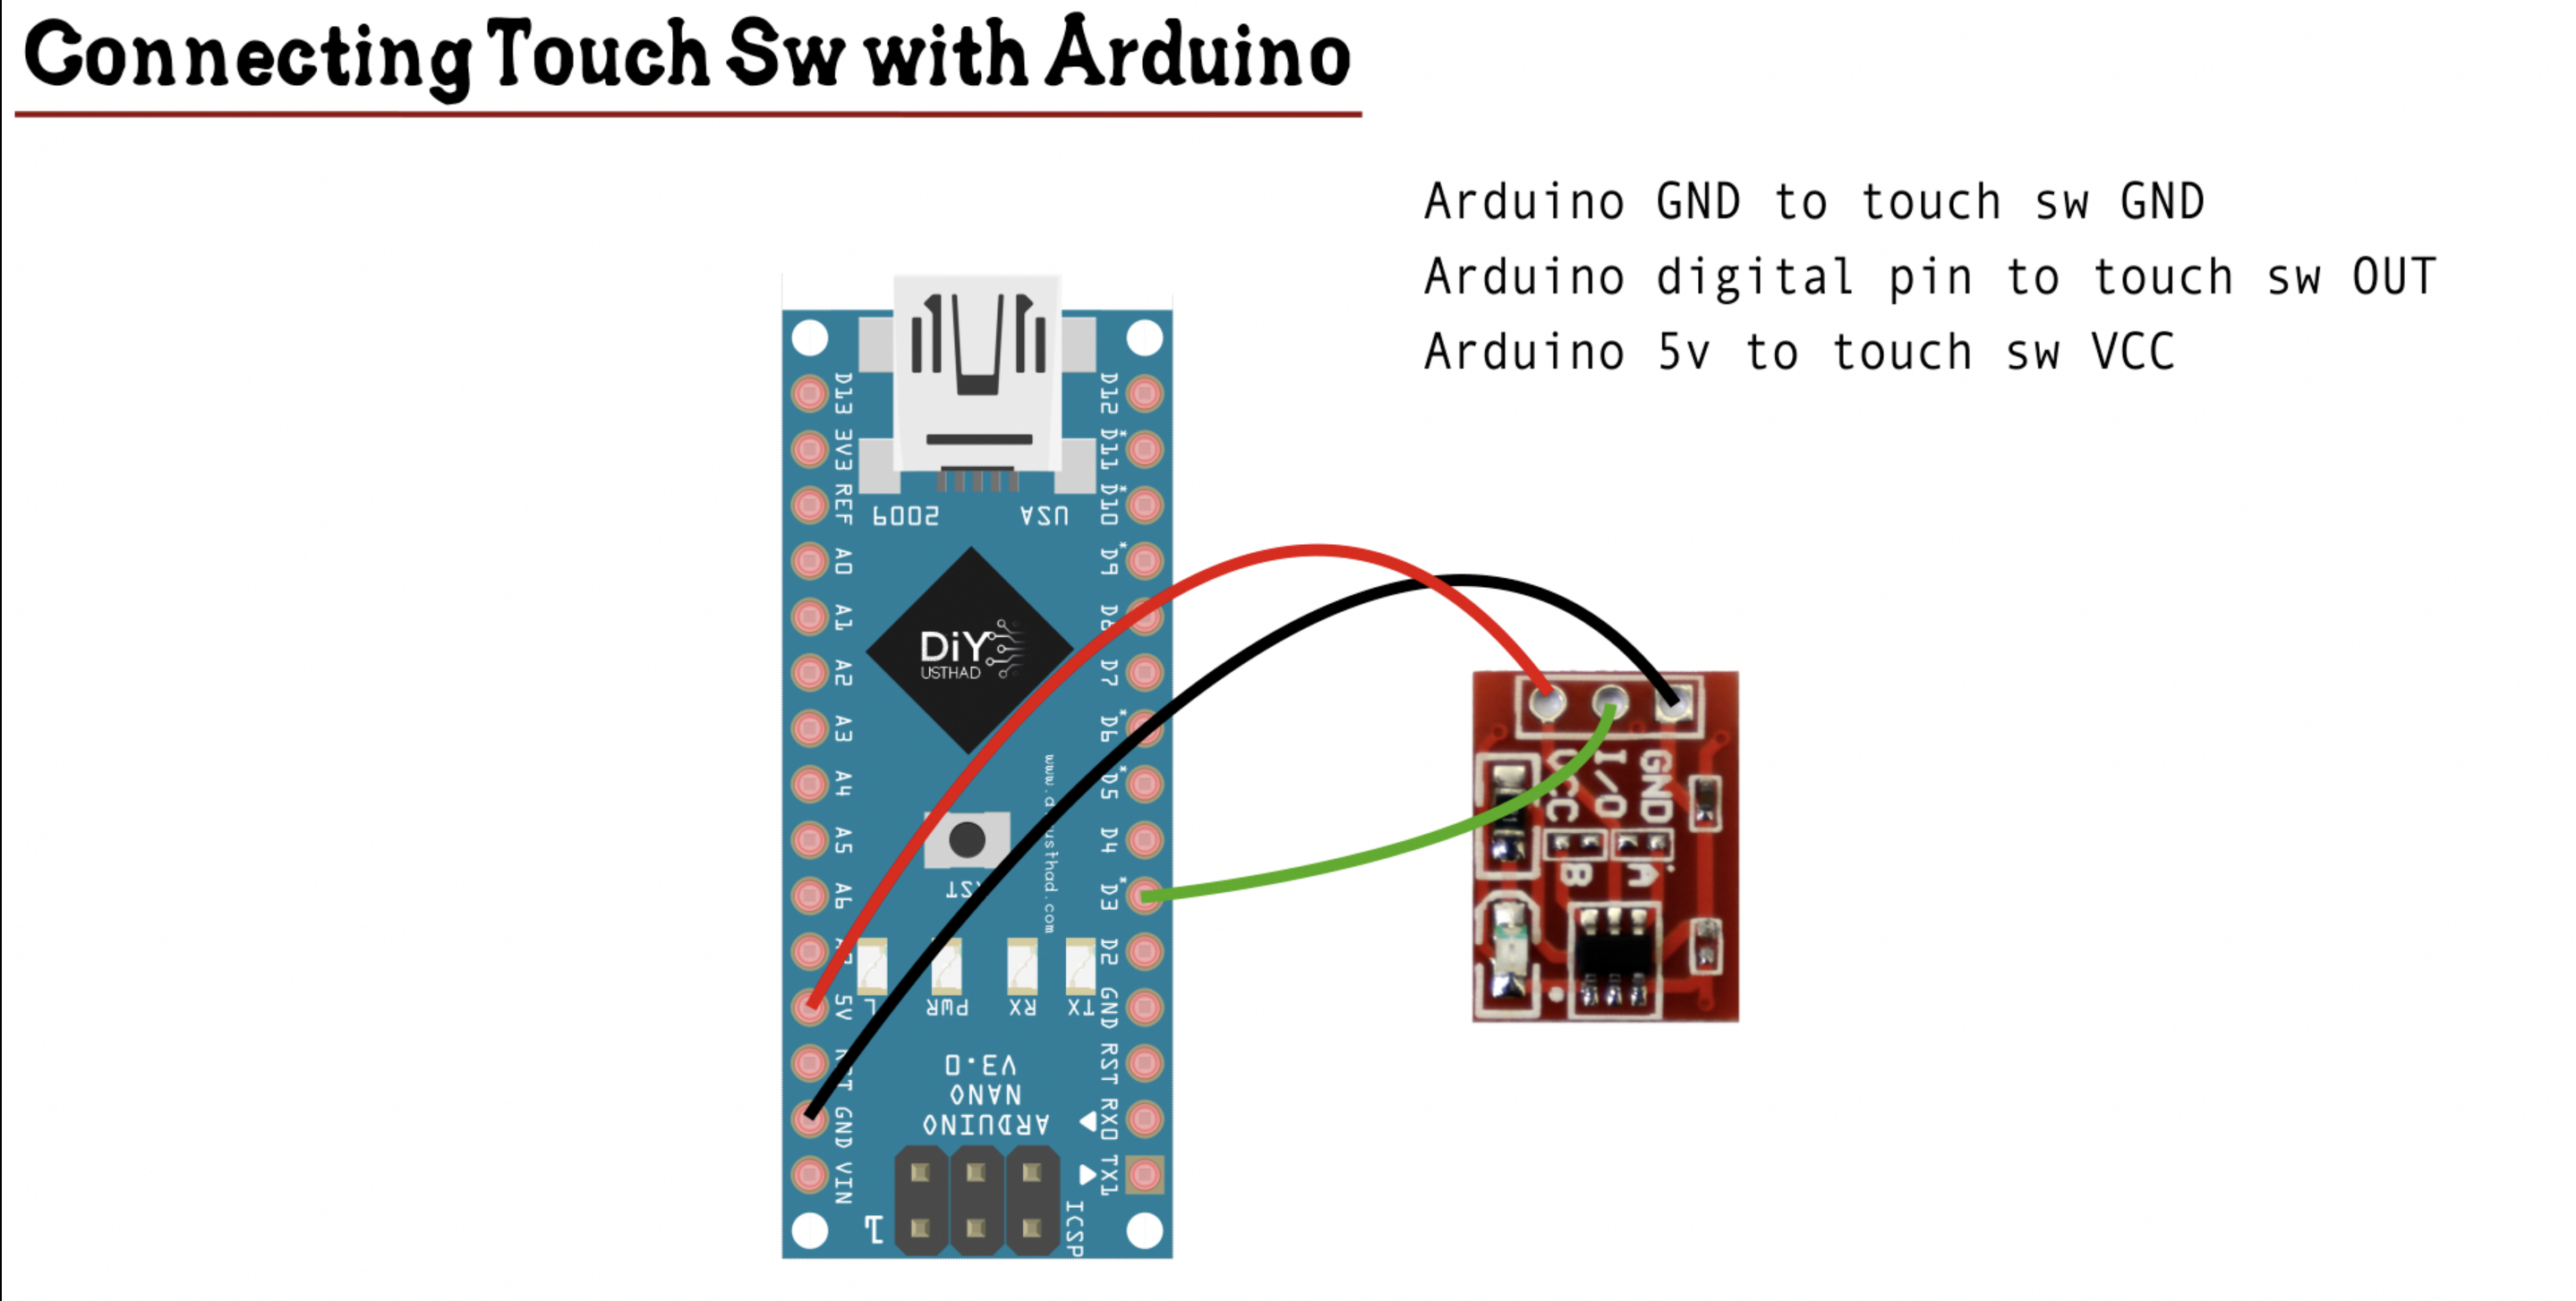 Touch sw with arduino lrvqoq99dh